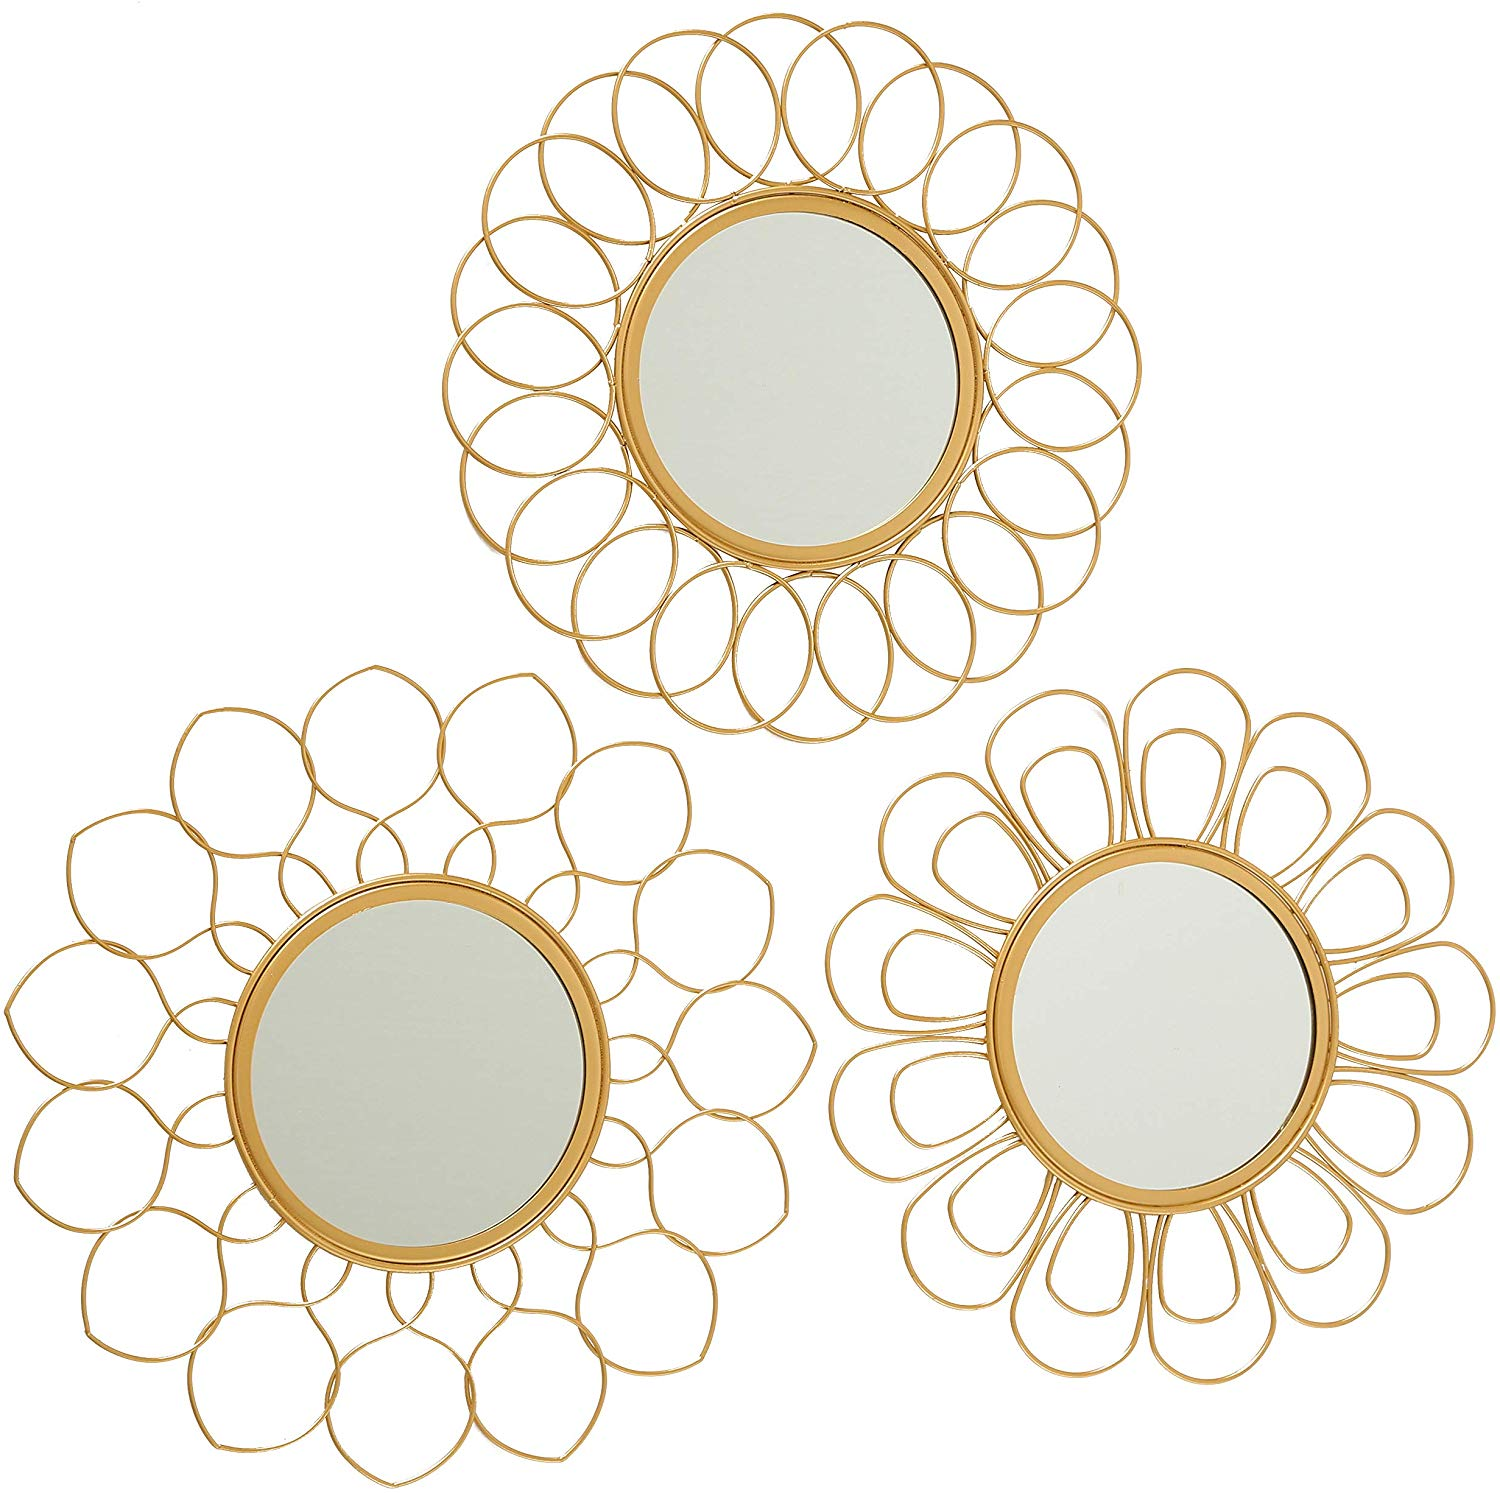 14.5 Inches Diameter Each 1 Inch Profile Whole House Worlds WHW Set of 3 Metal Frame Burst Mirrors Brilliant Glass Glam Gold Durable Iron Keyhole Hanger on Back